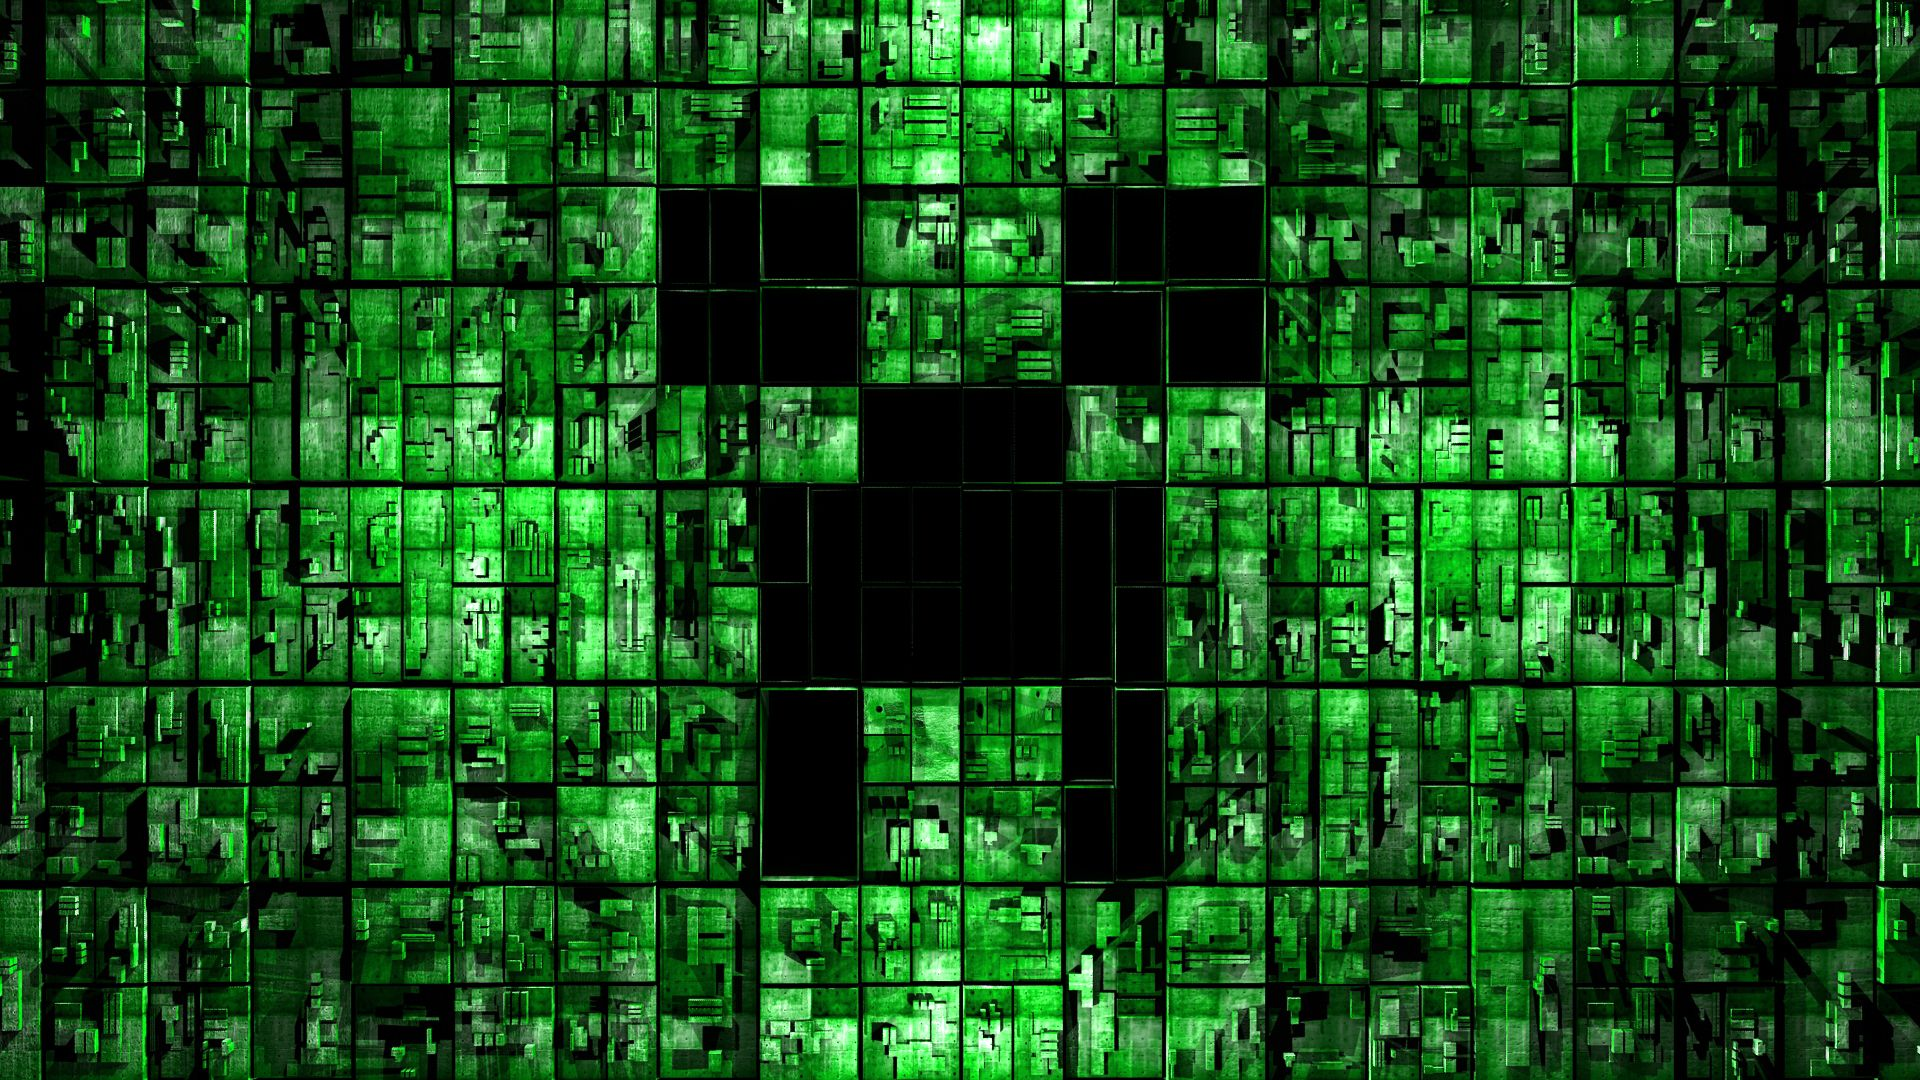 Wallpapers Hd Creeper Minecraft Wallpaper Creeper Minecraft